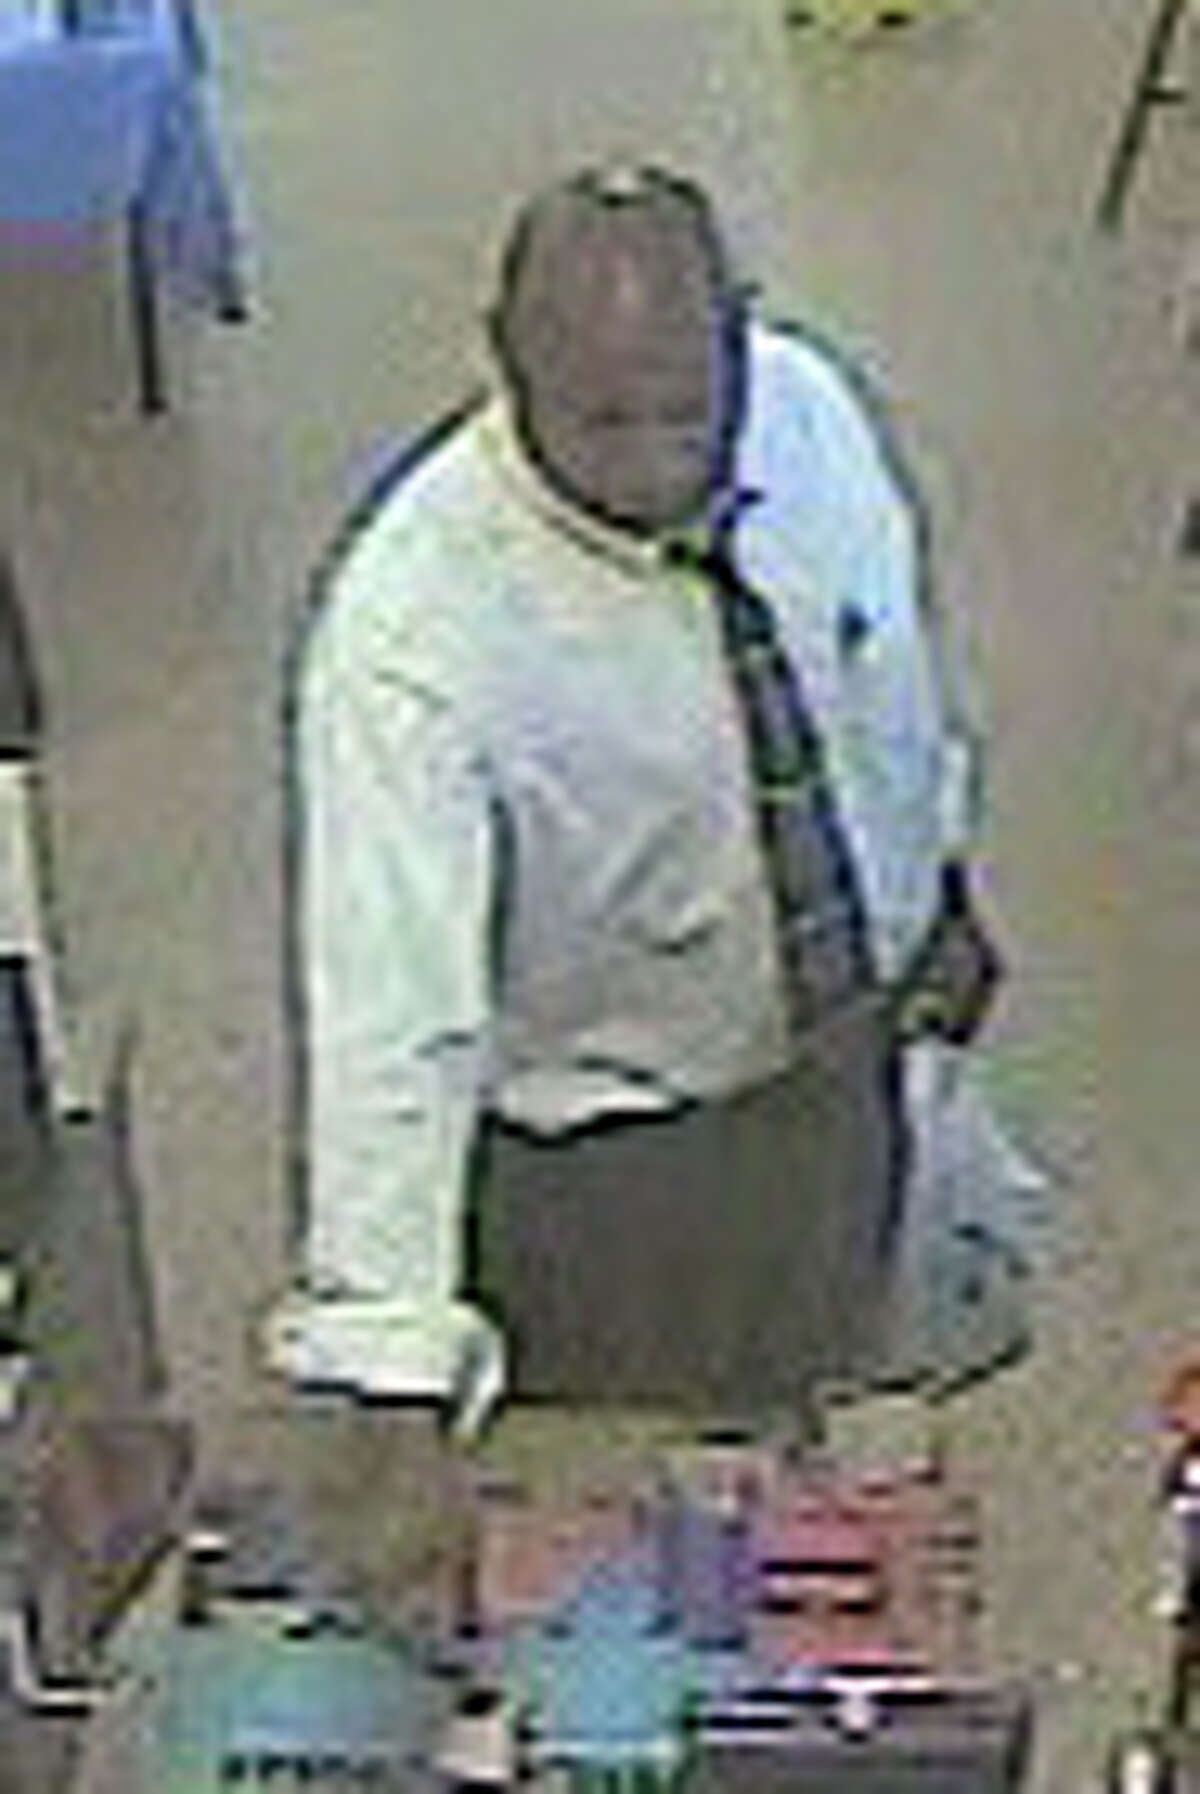 Saratoga County officials released this photo as part of an ID theft investigation (Sheriff's department)